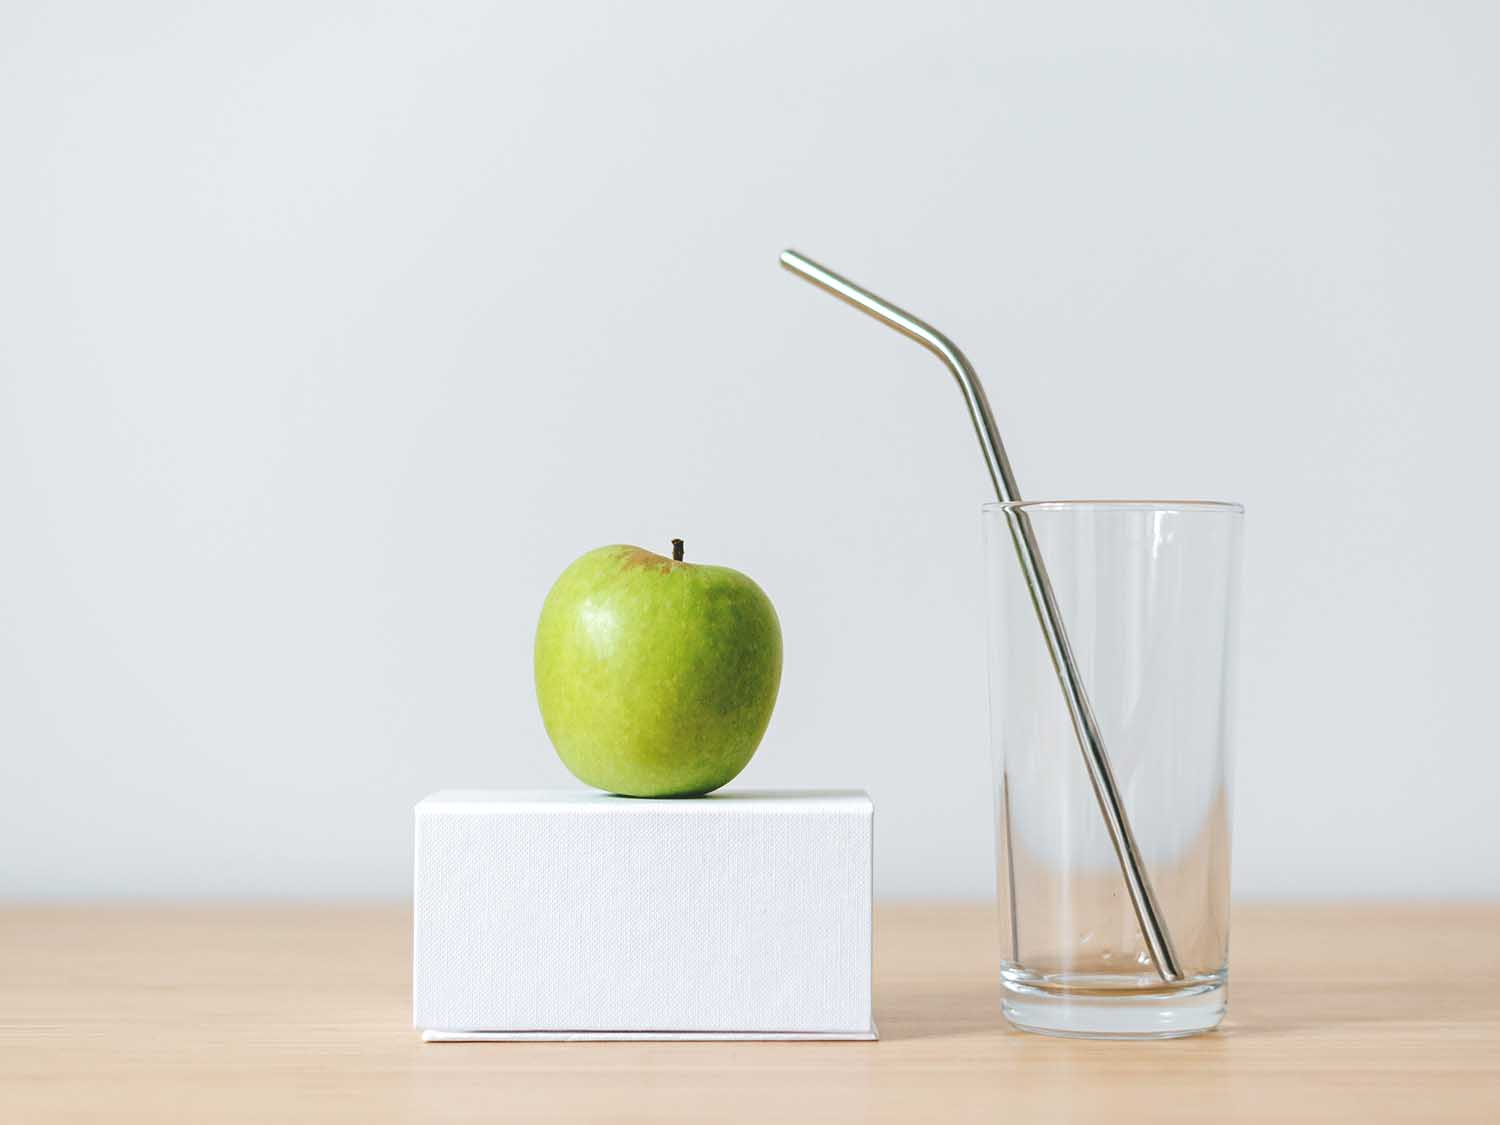 stainless steel straws safe for the environment